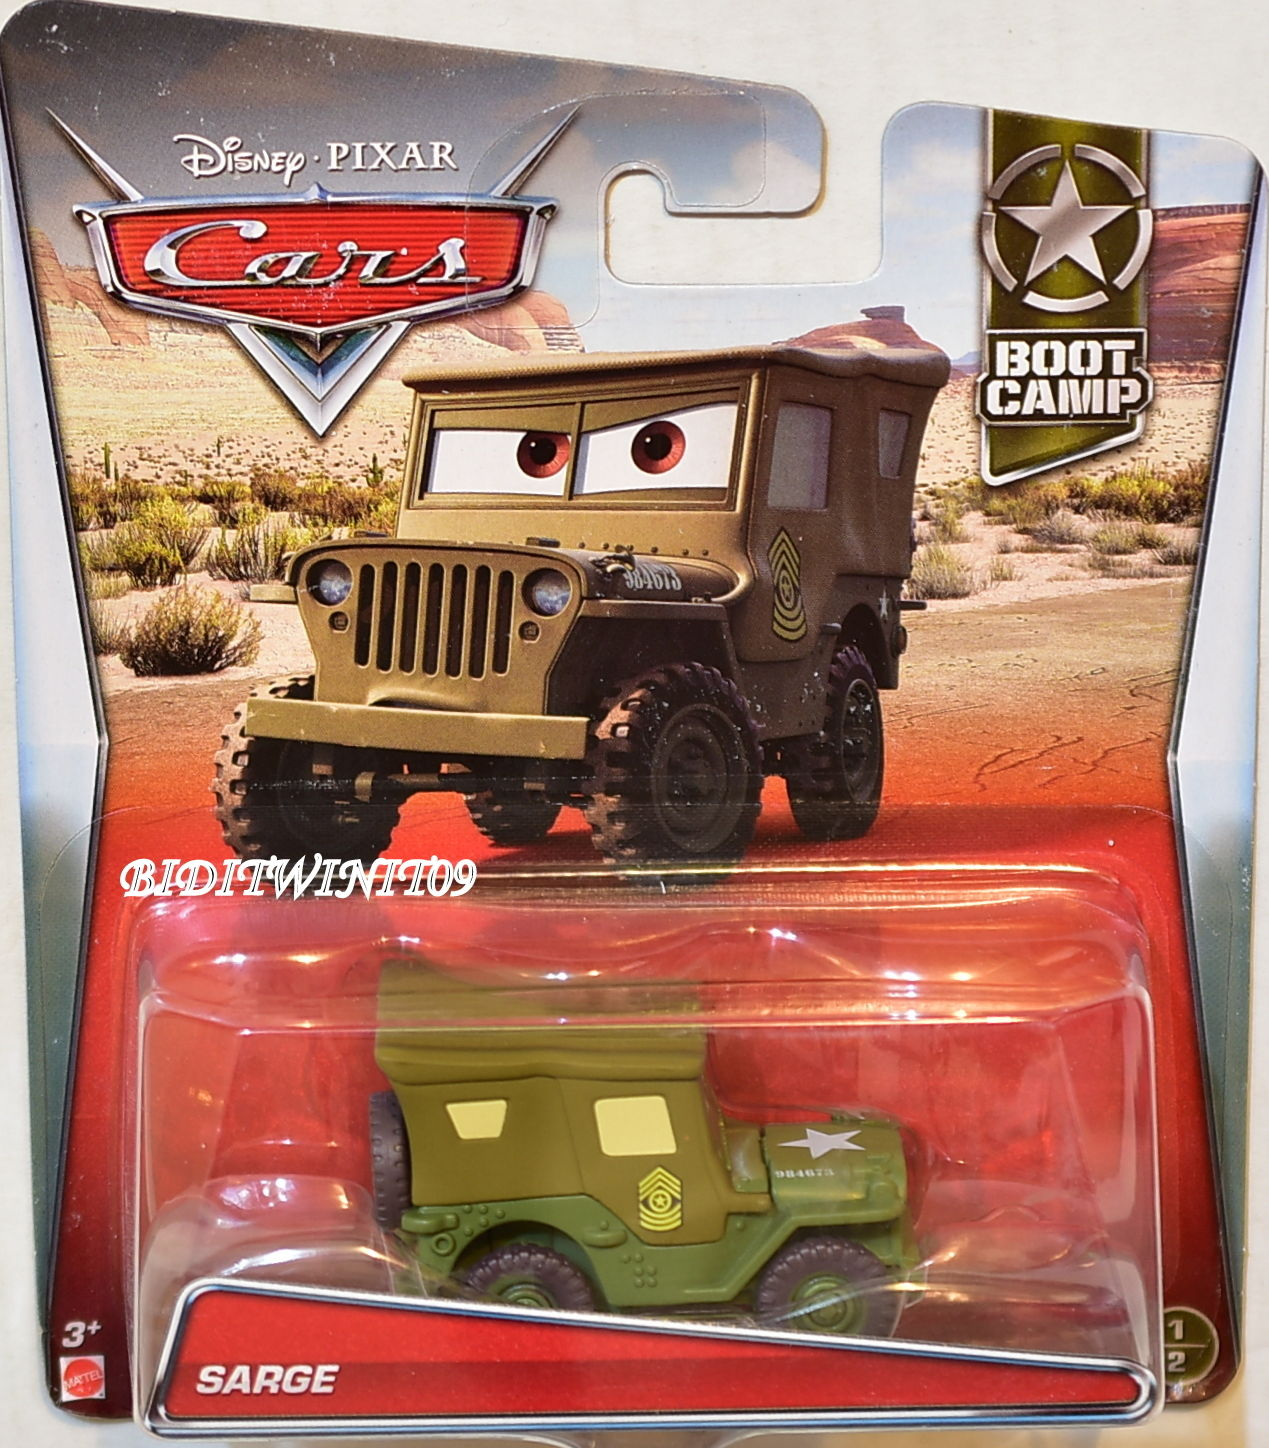 DISNEY PIXAR CARS 2017 BOOT CAMP SARGE